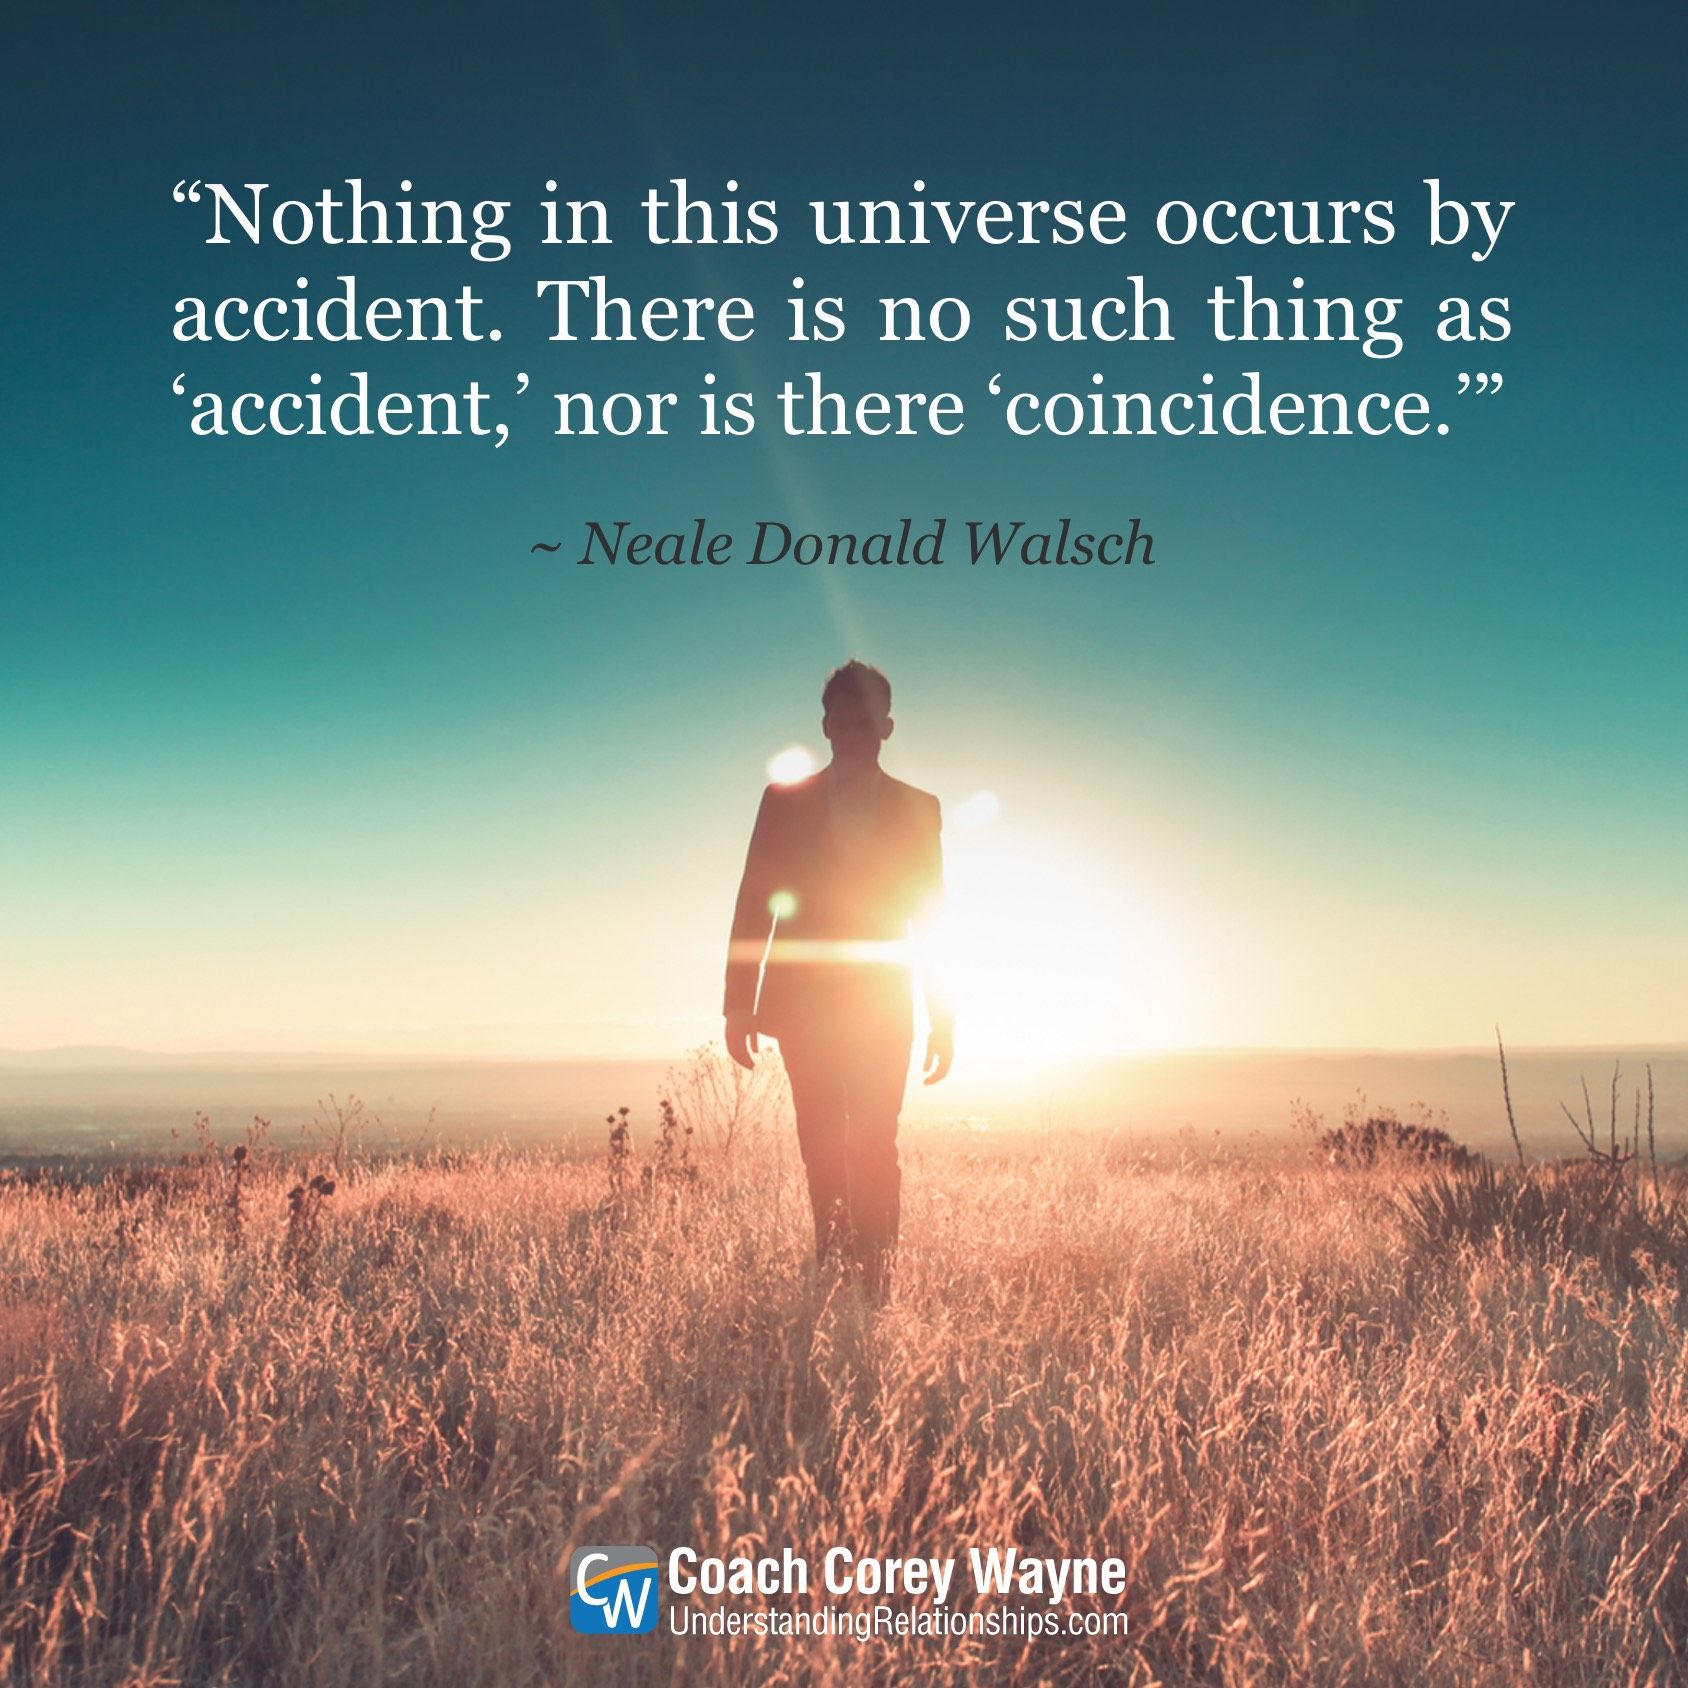 Quotes About Peace And Happiness Nealedonaldwalsch Conversationswithgod Accidents Coincidence